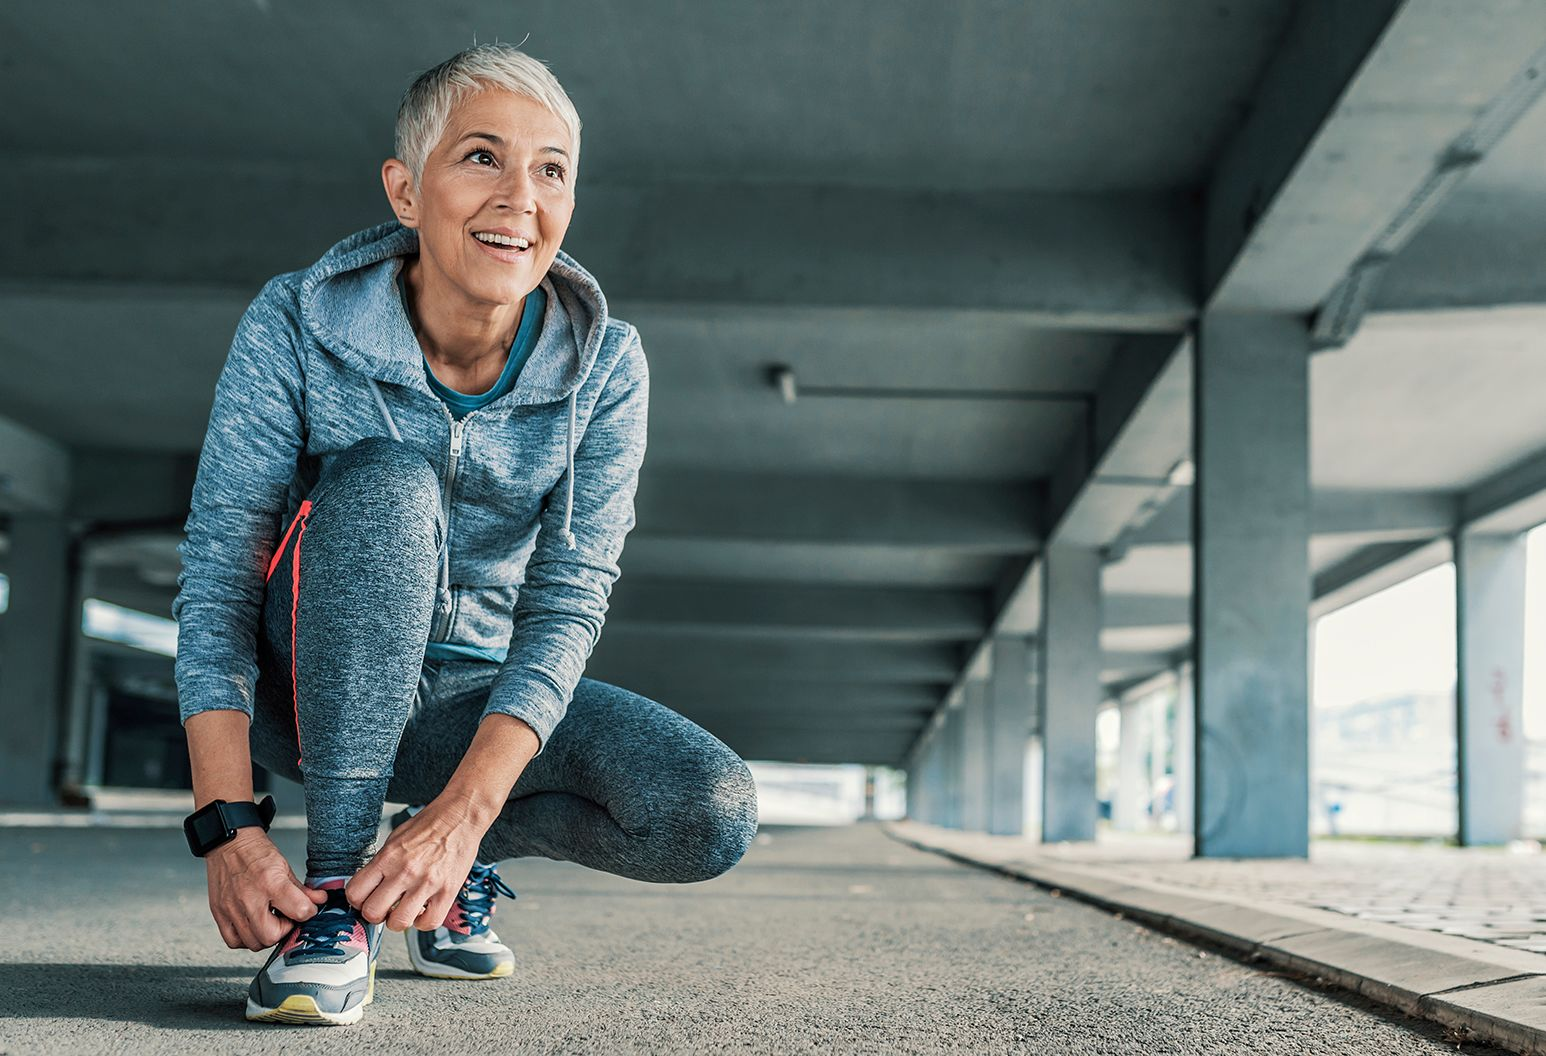 An elderly woman with short gray hair wearing gray work out clothes ties her shoes and smiles before a run.